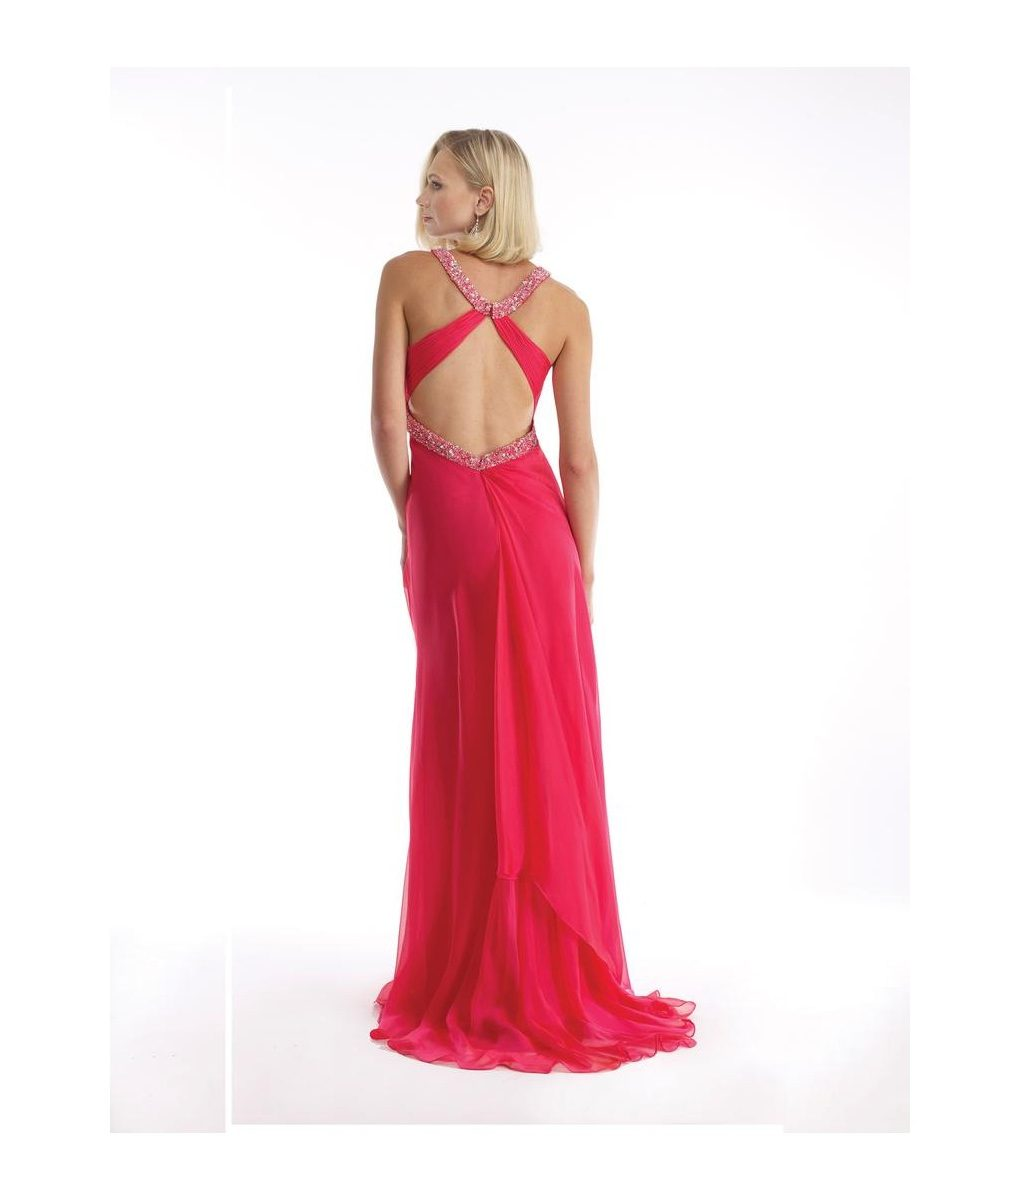 morrell-maxie-iridescent-coral-chiffon-backless-dress (1)